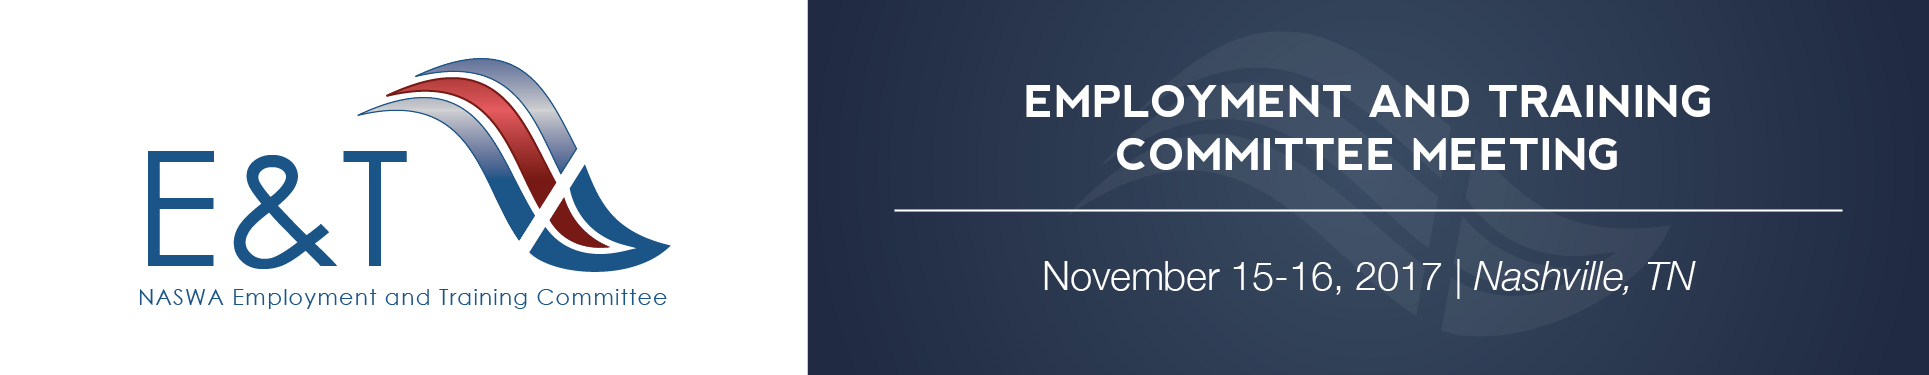 Employment & Training Committee Meeting (Nov. 2017)